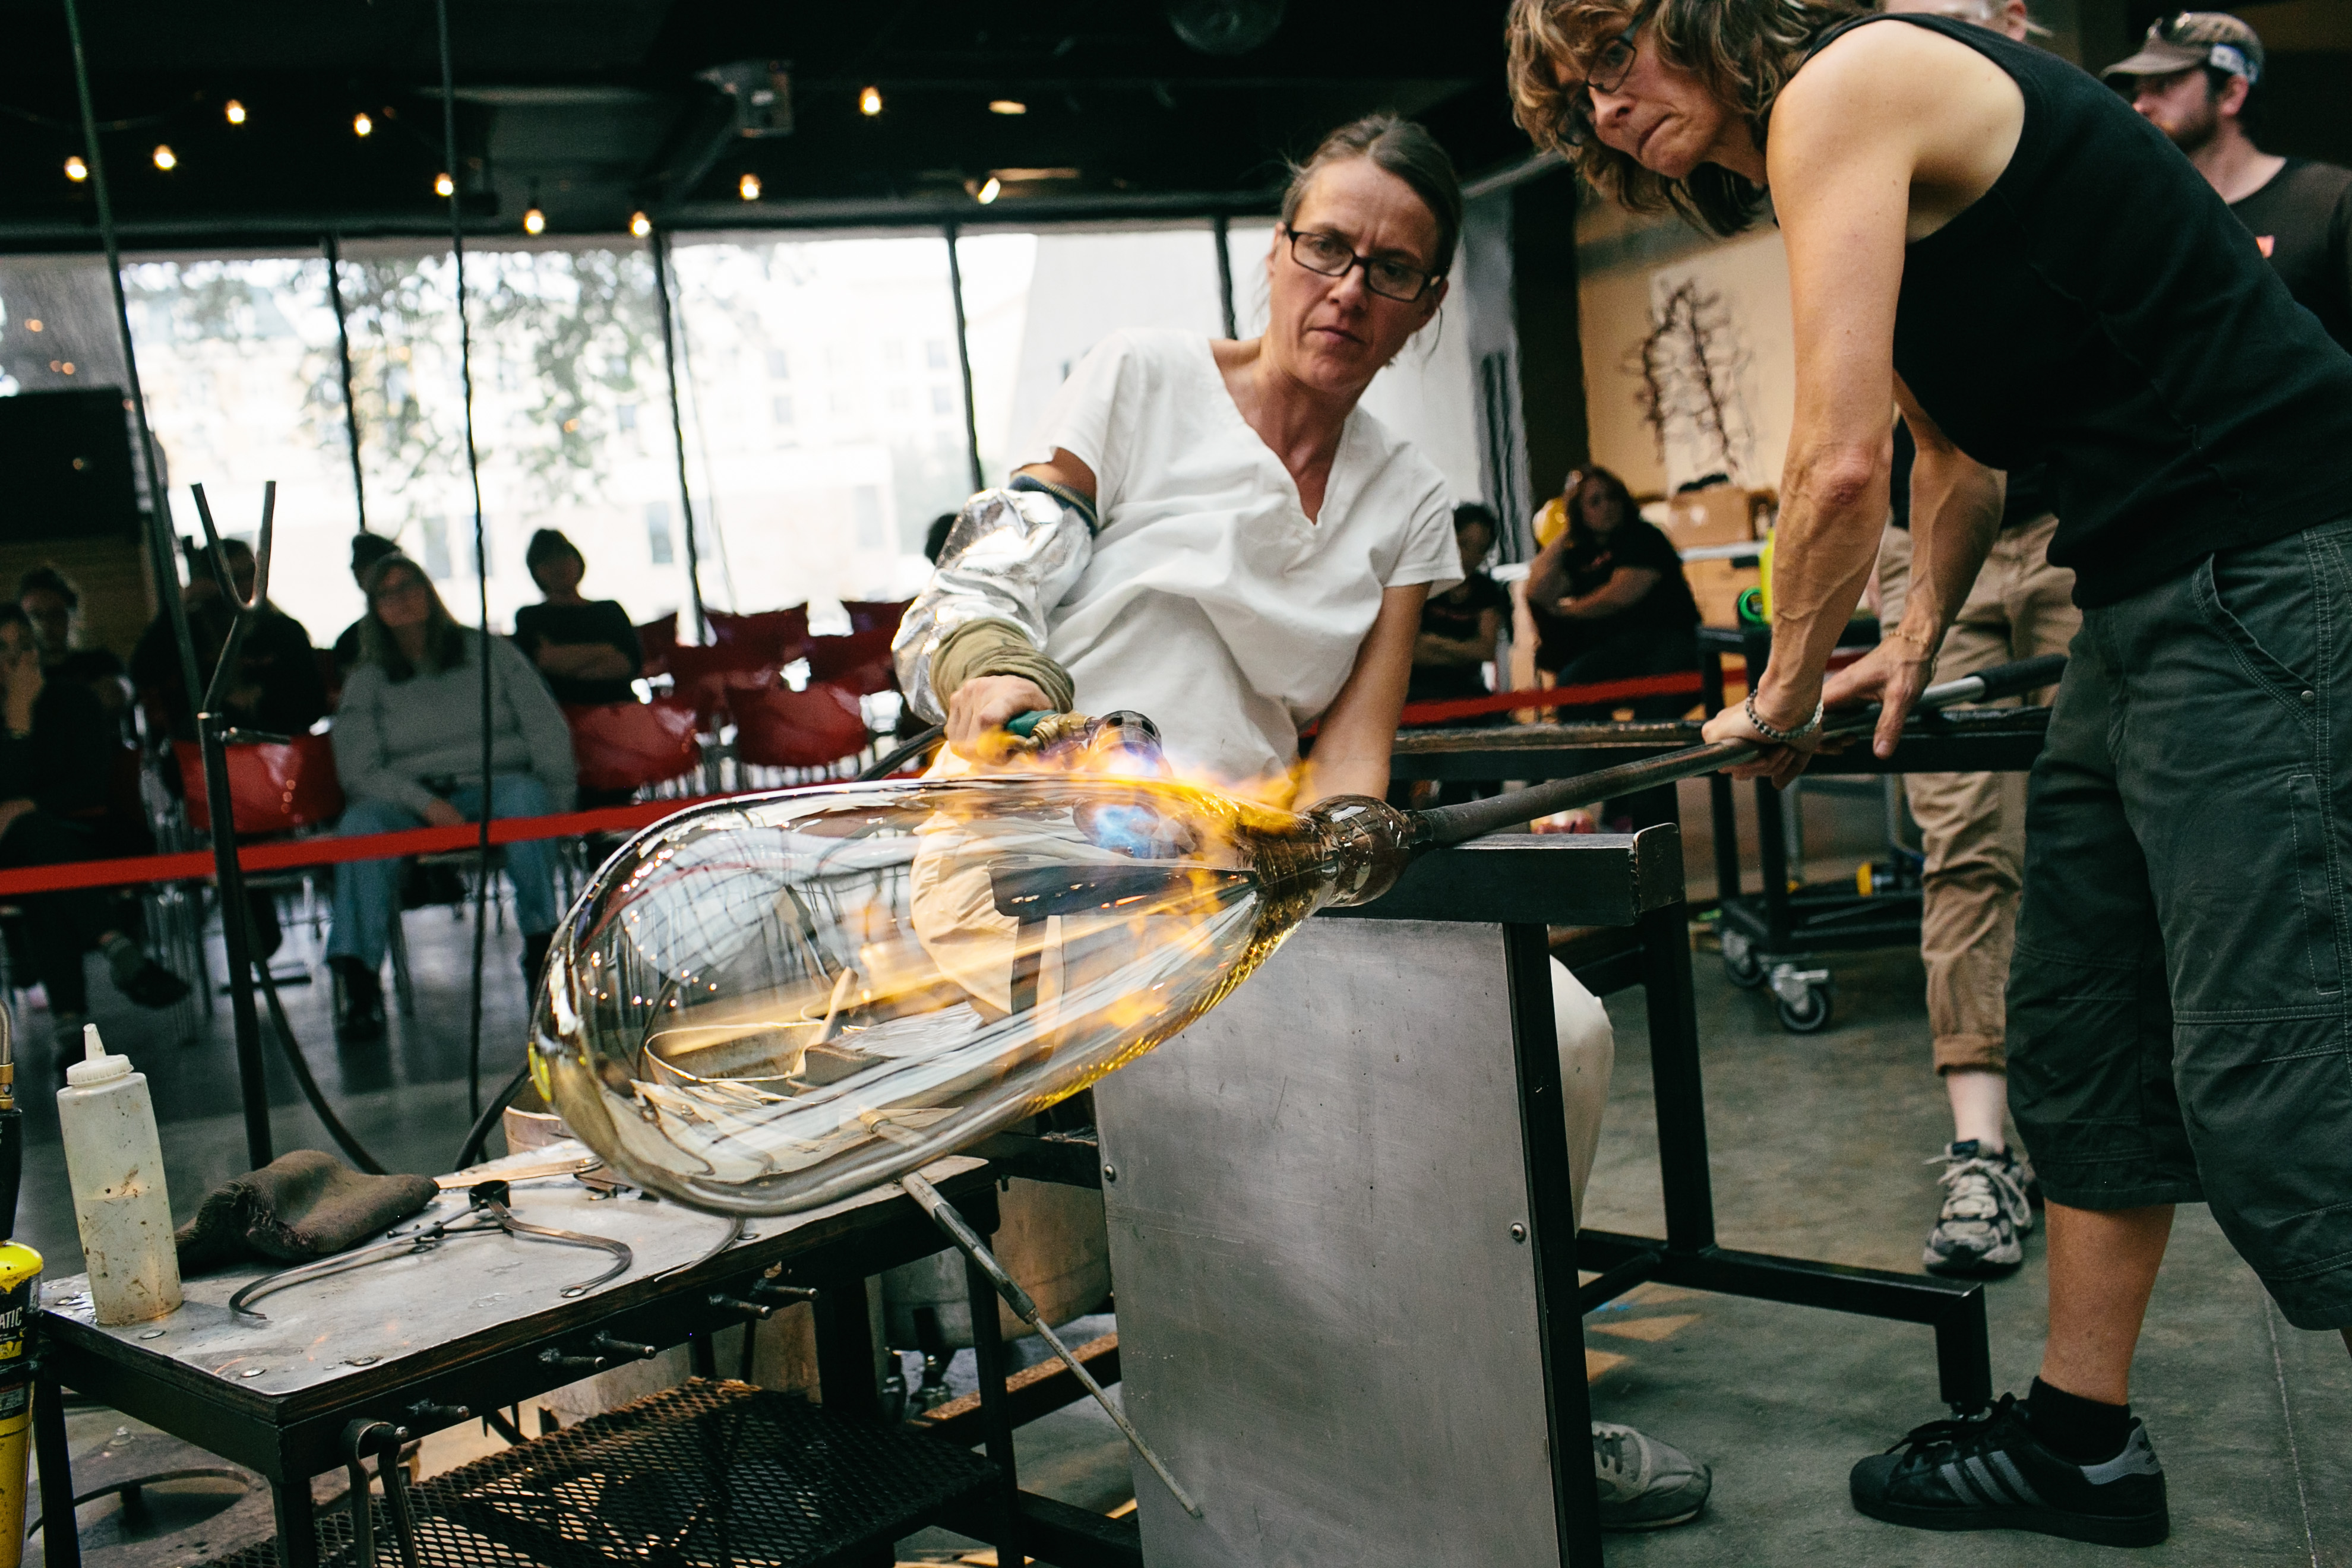 Katherine Gray, Being in a Hot Shop, Hot Shop, Toledo Museum of Art, TMA, Glass Art